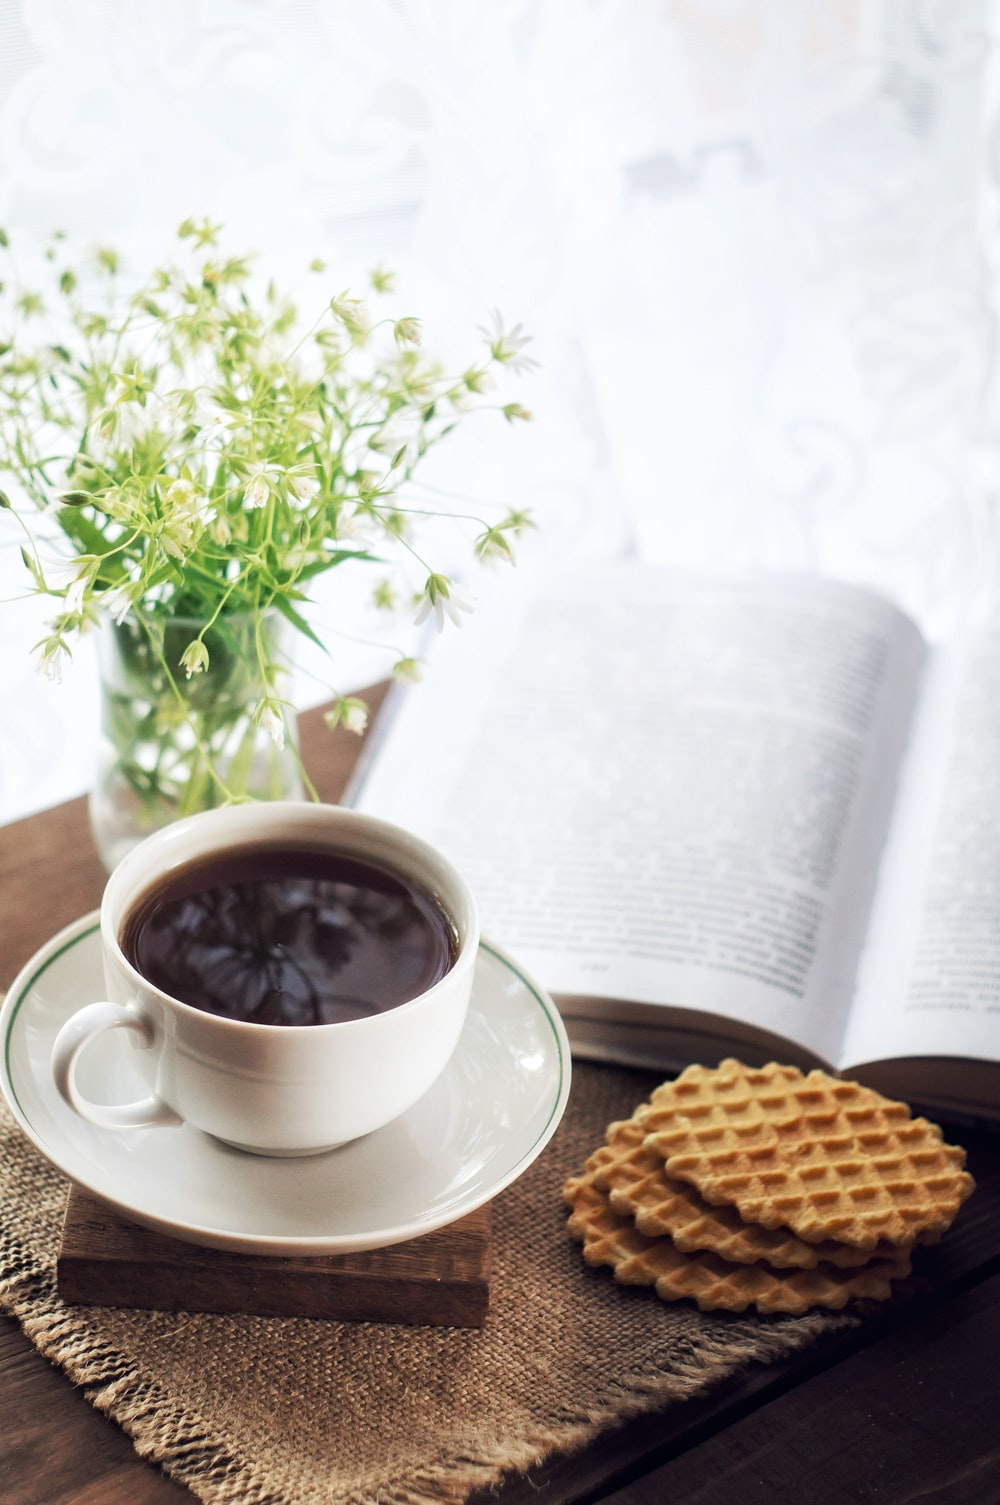 white ceramic cup with saucer beside brown cookies